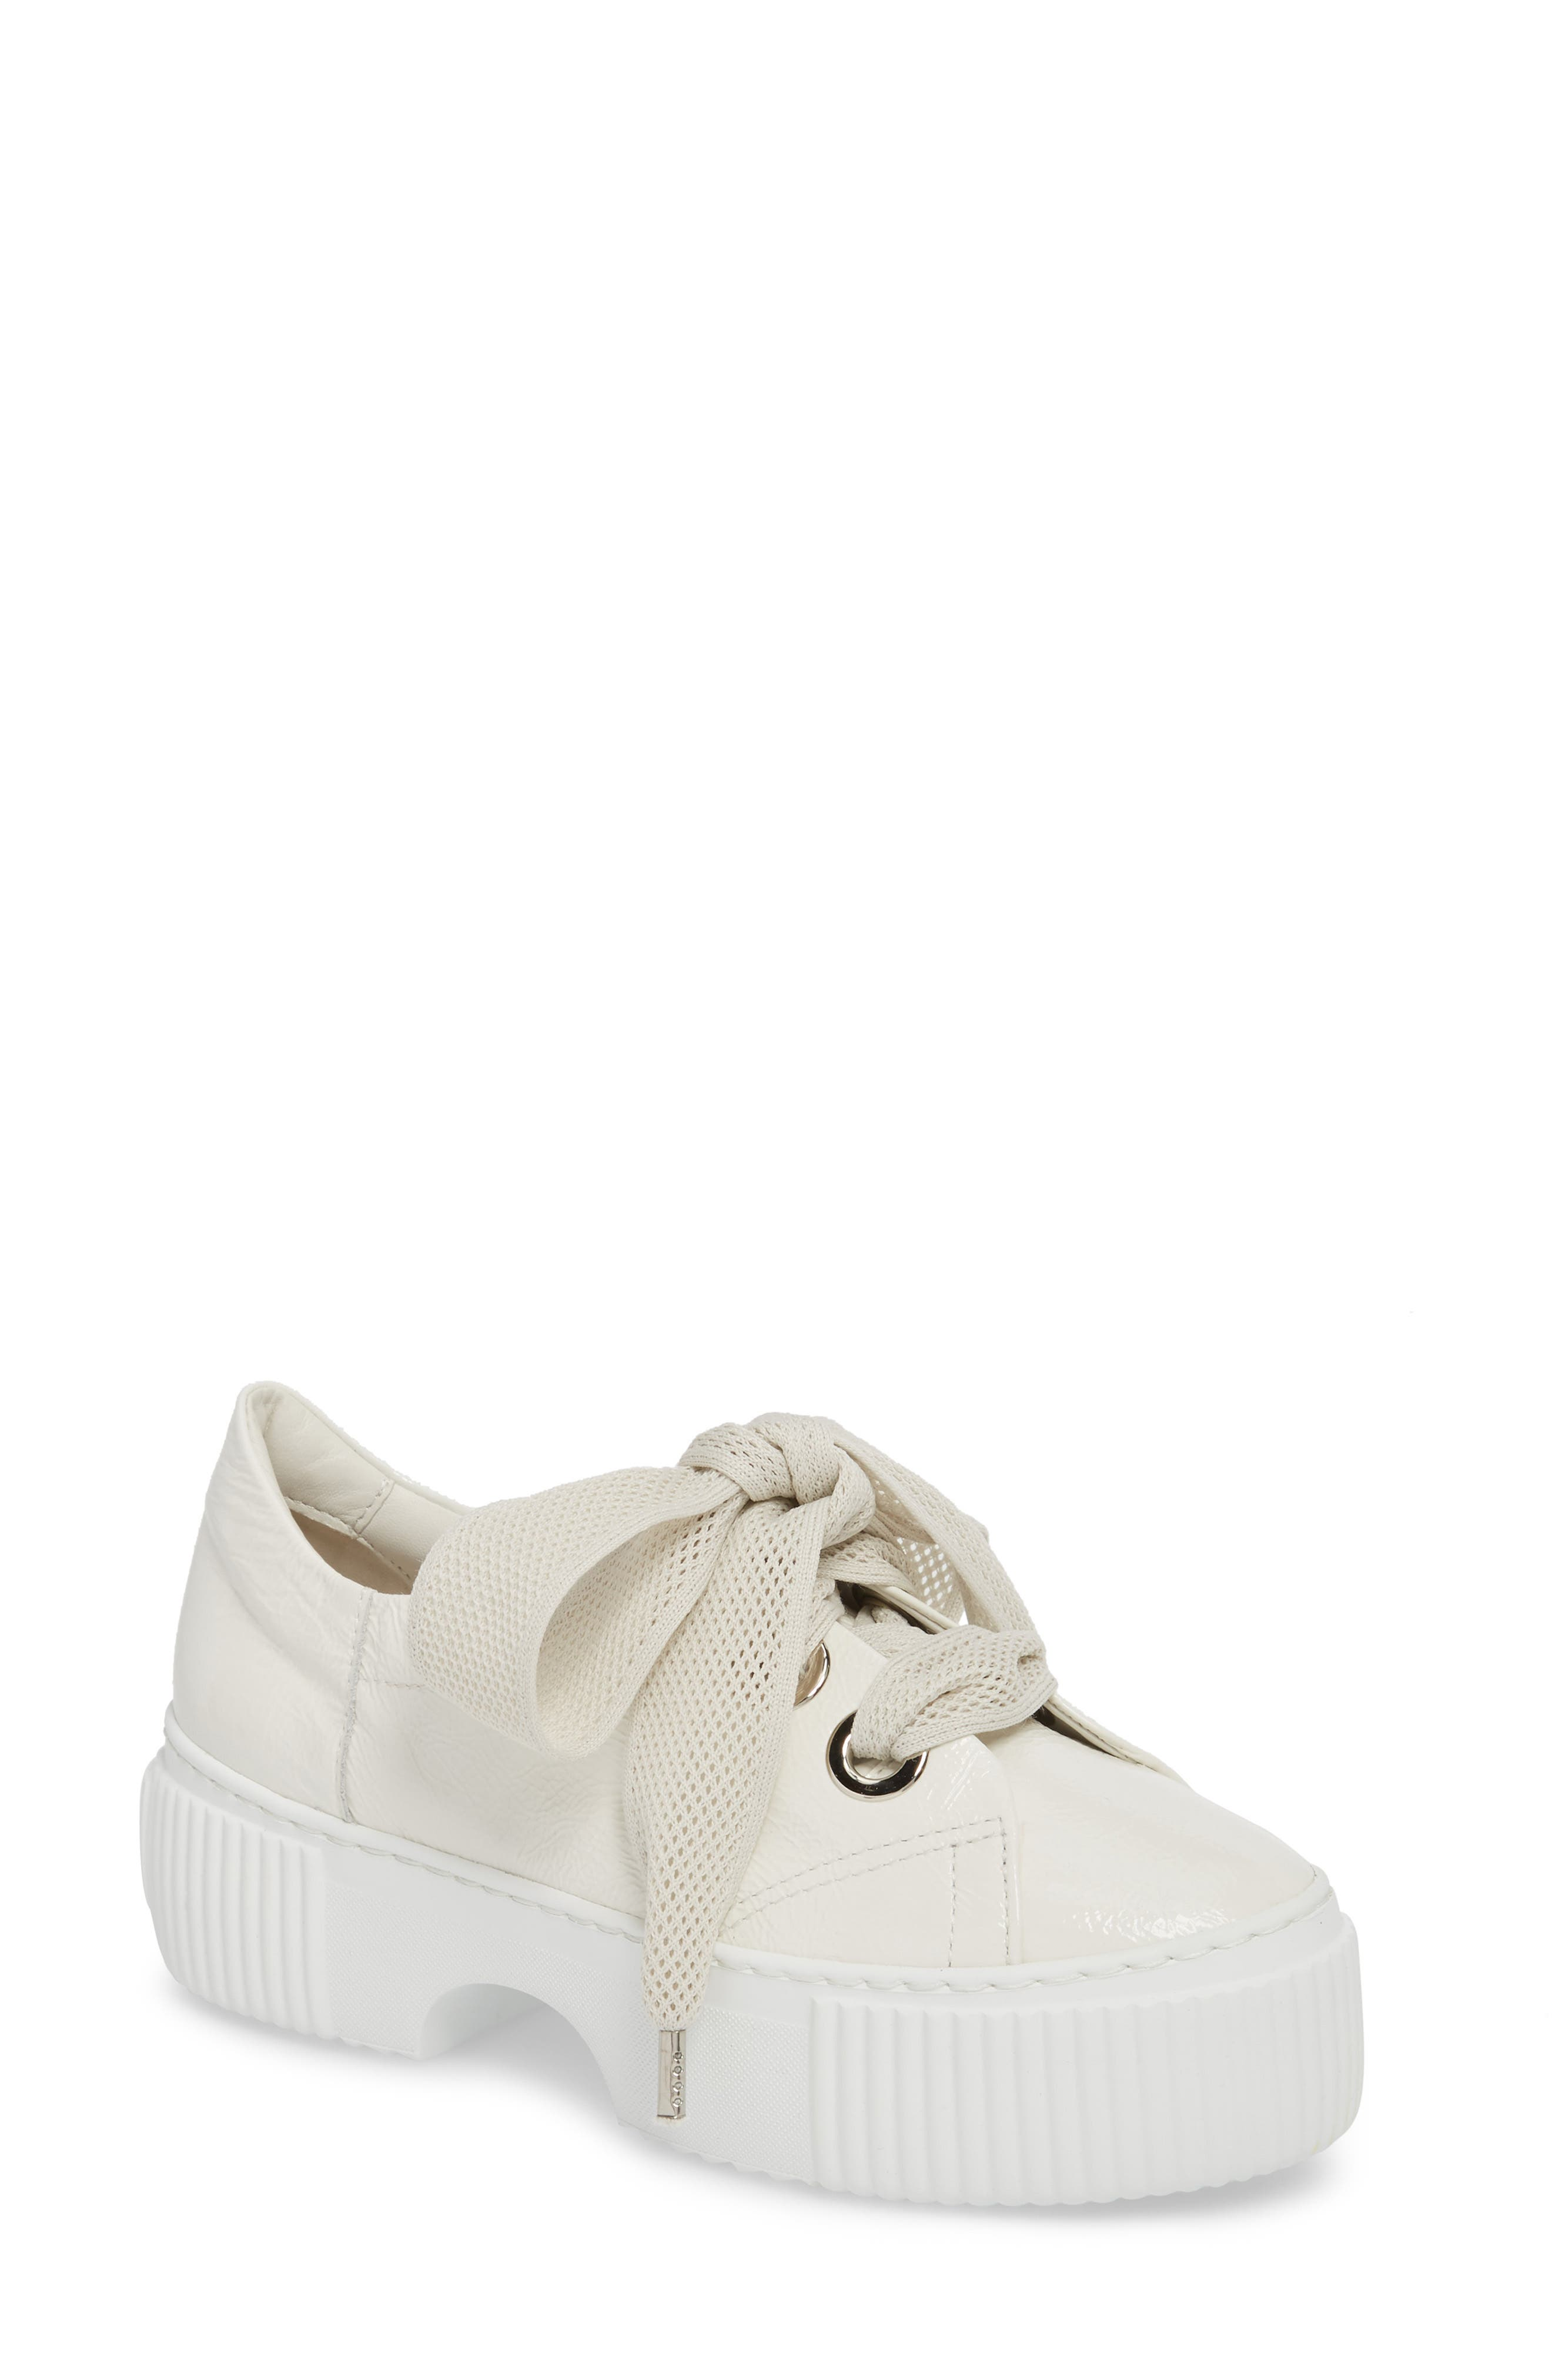 Platform Sneaker,                         Main,                         color, WHITE GLAMMY LEATHER